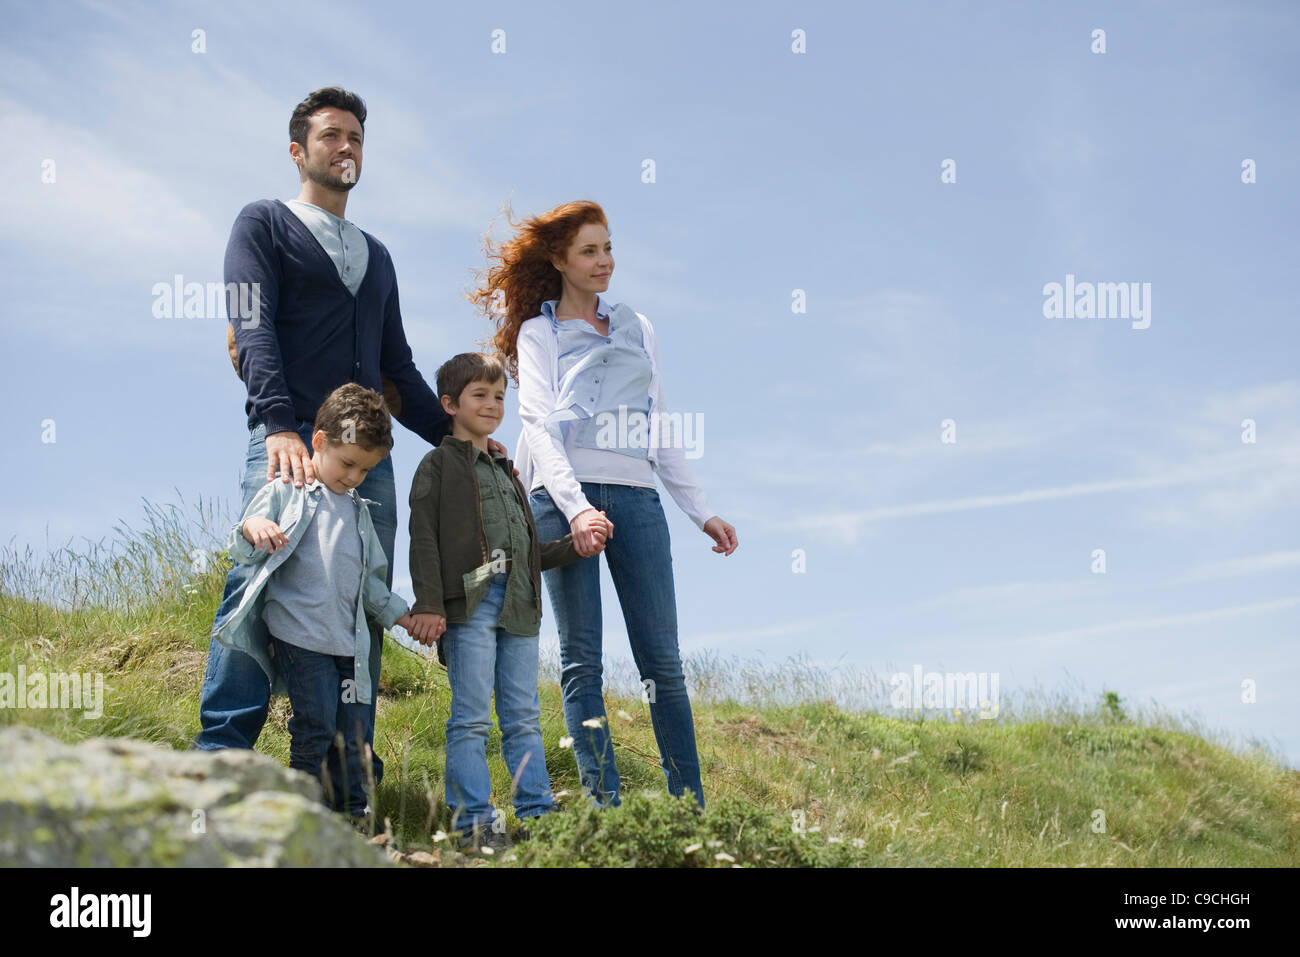 Parents and young boys standing on meadow, portrait - Stock Image